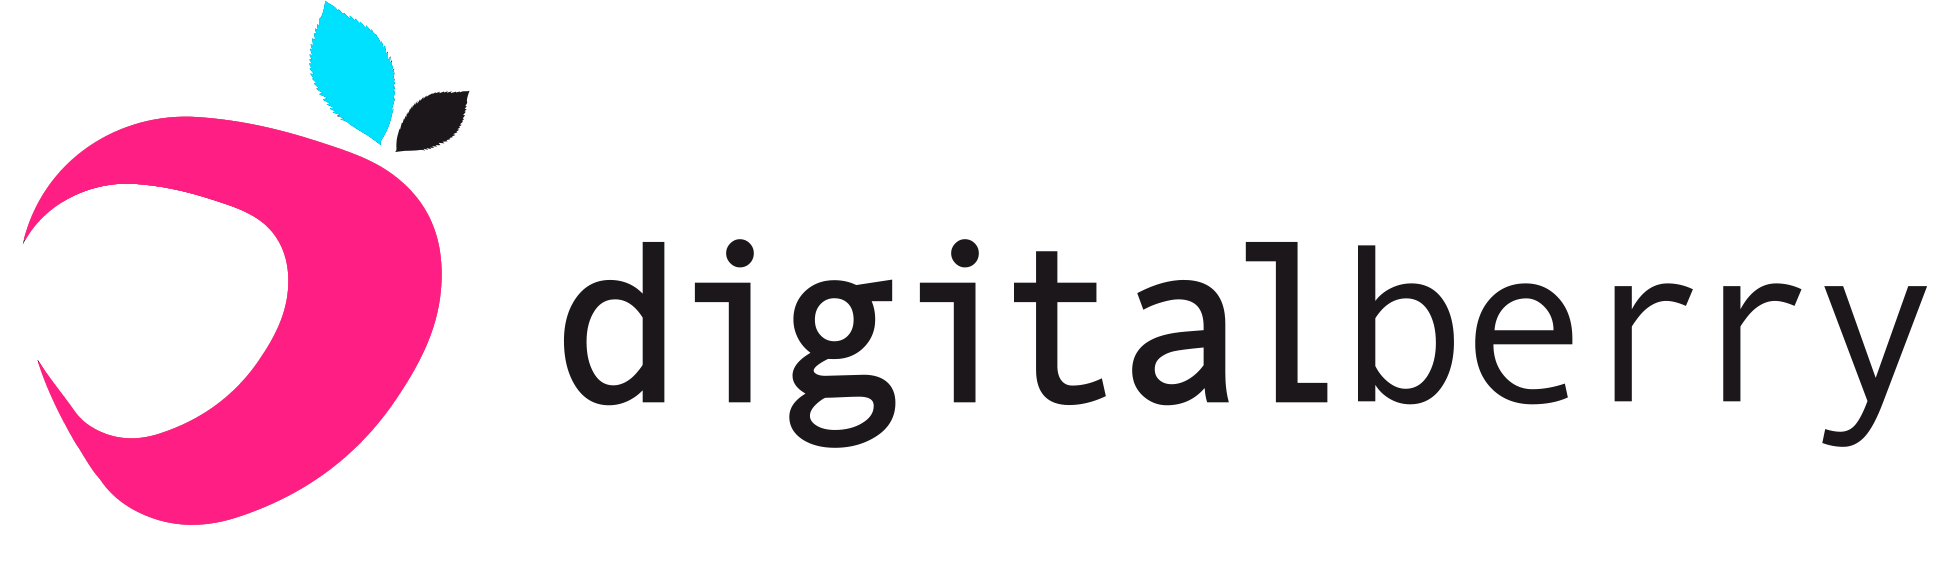 Digitaberry